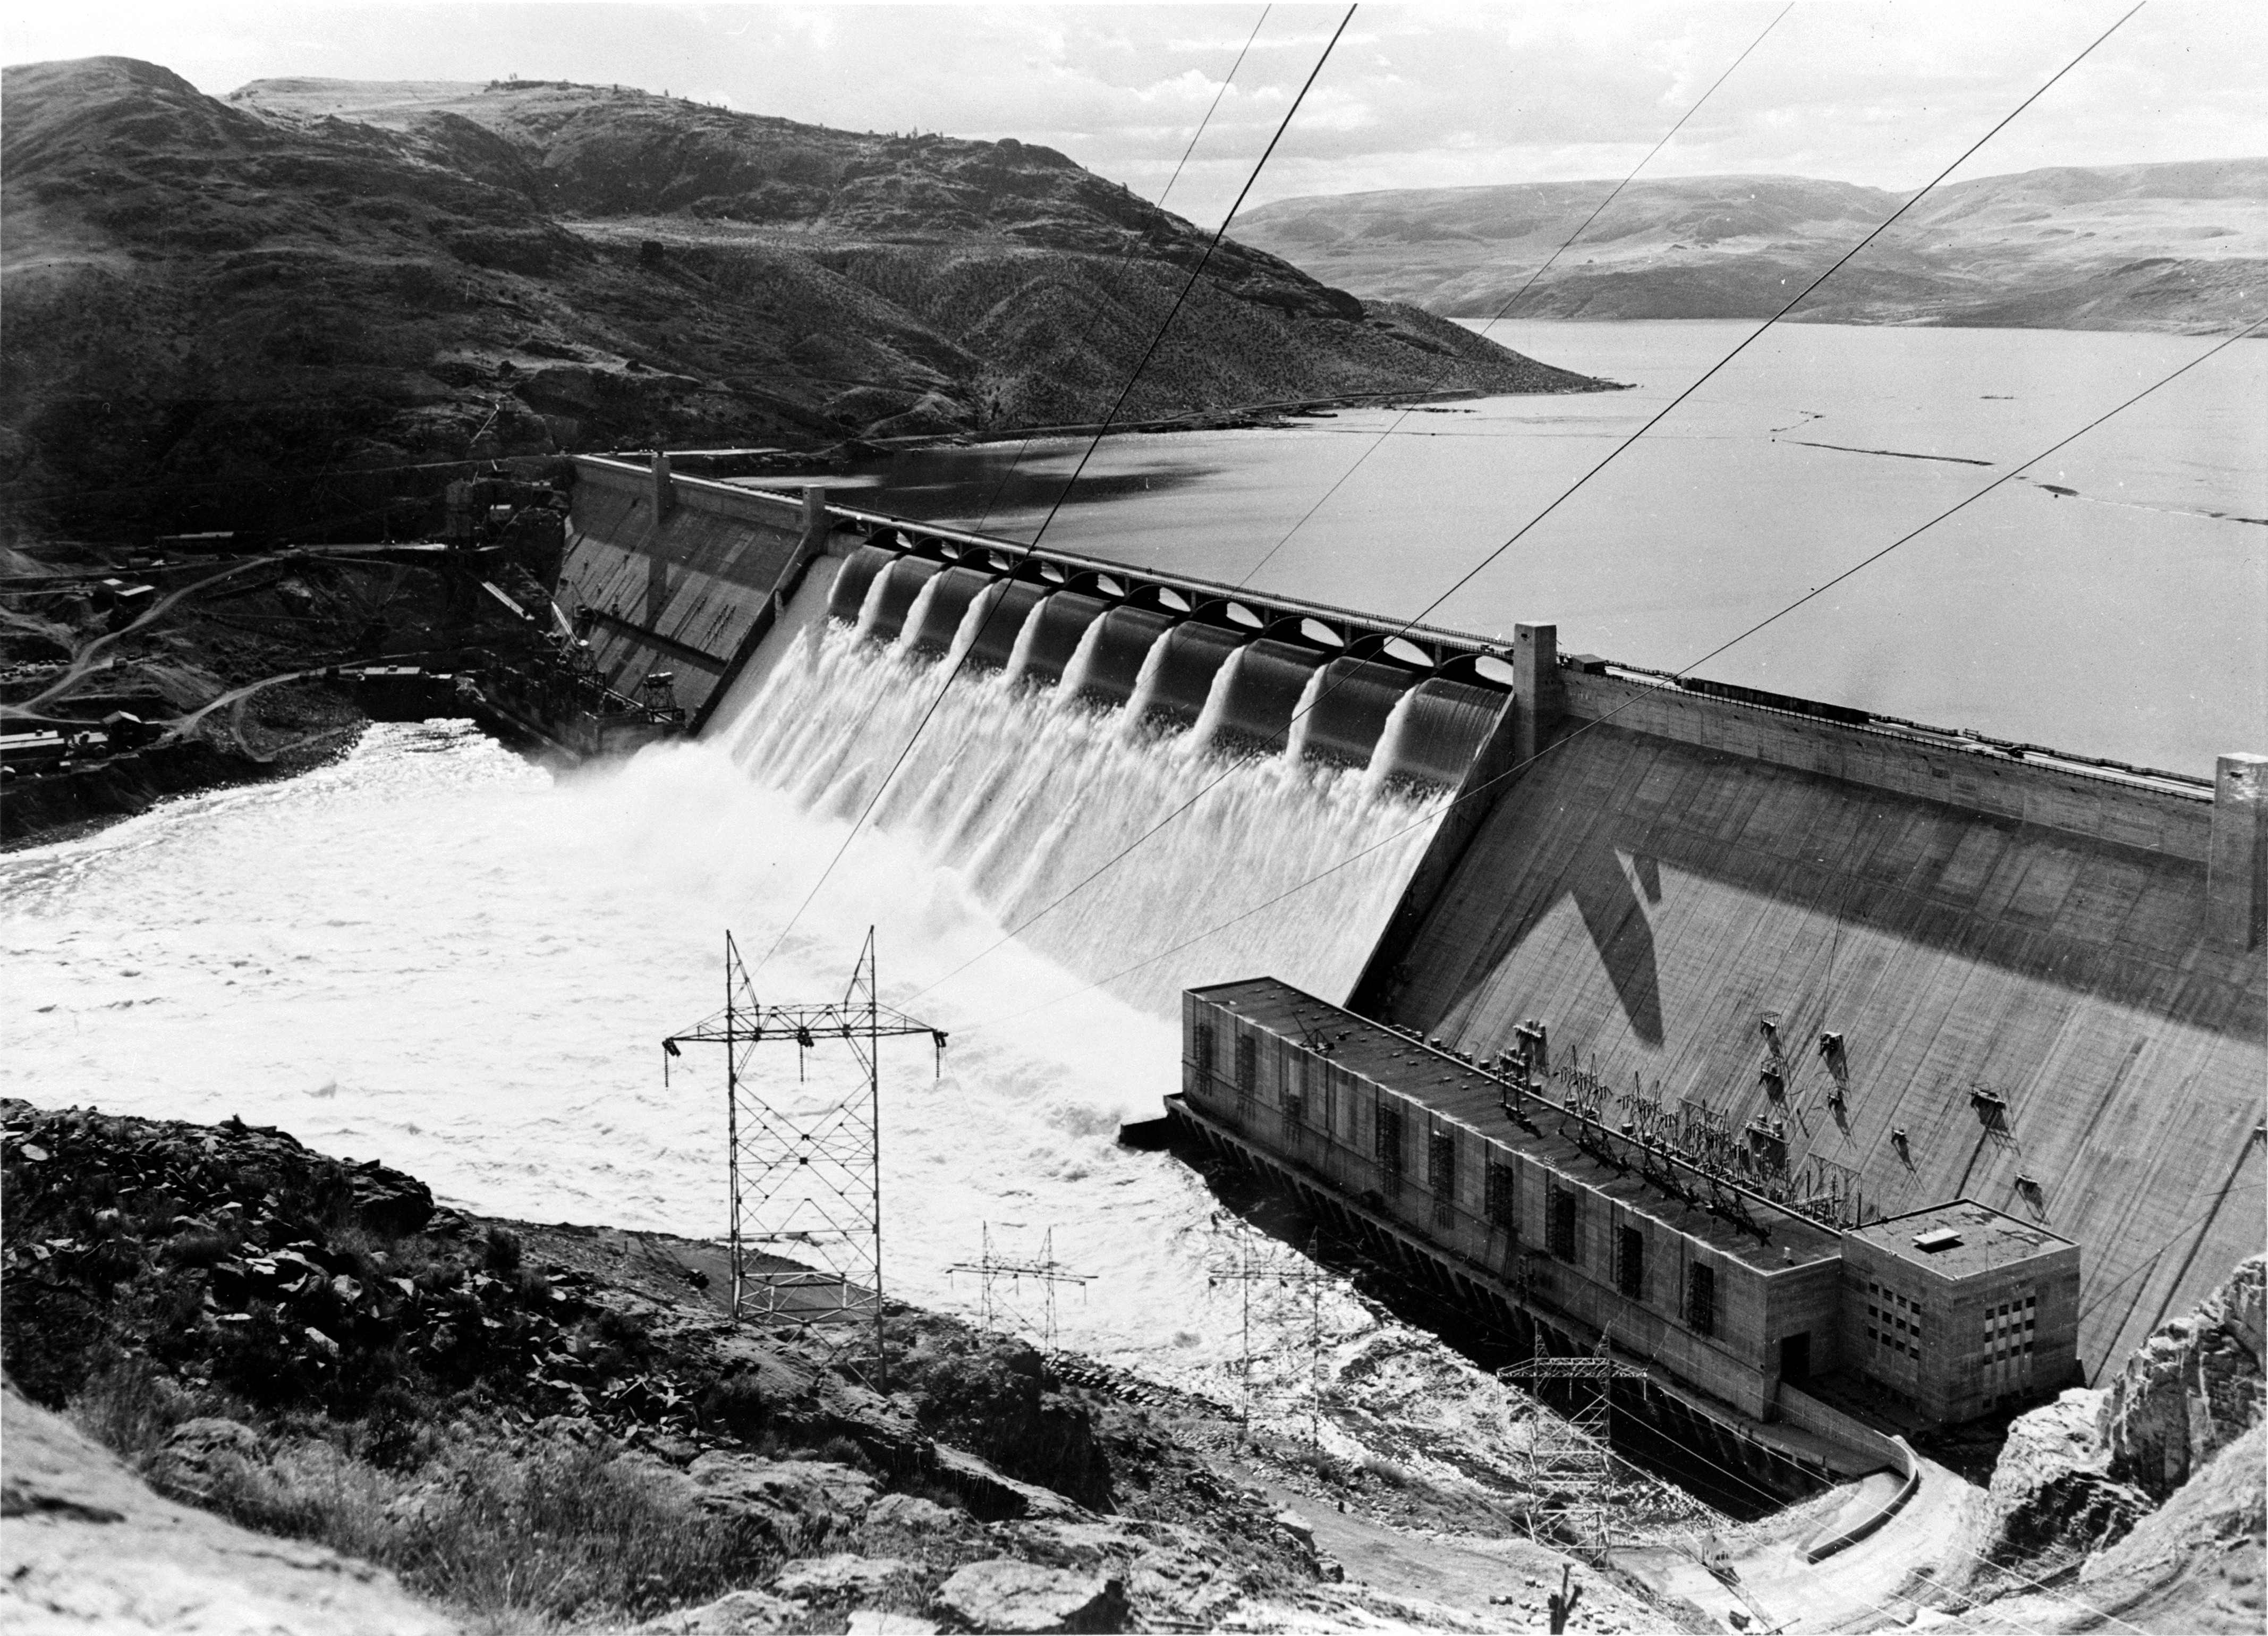 coulee dam dating Sockeye salmon in the columbia basin have declined substantially from historic grand coulee dam no other annual count on a record dating back to 1977.